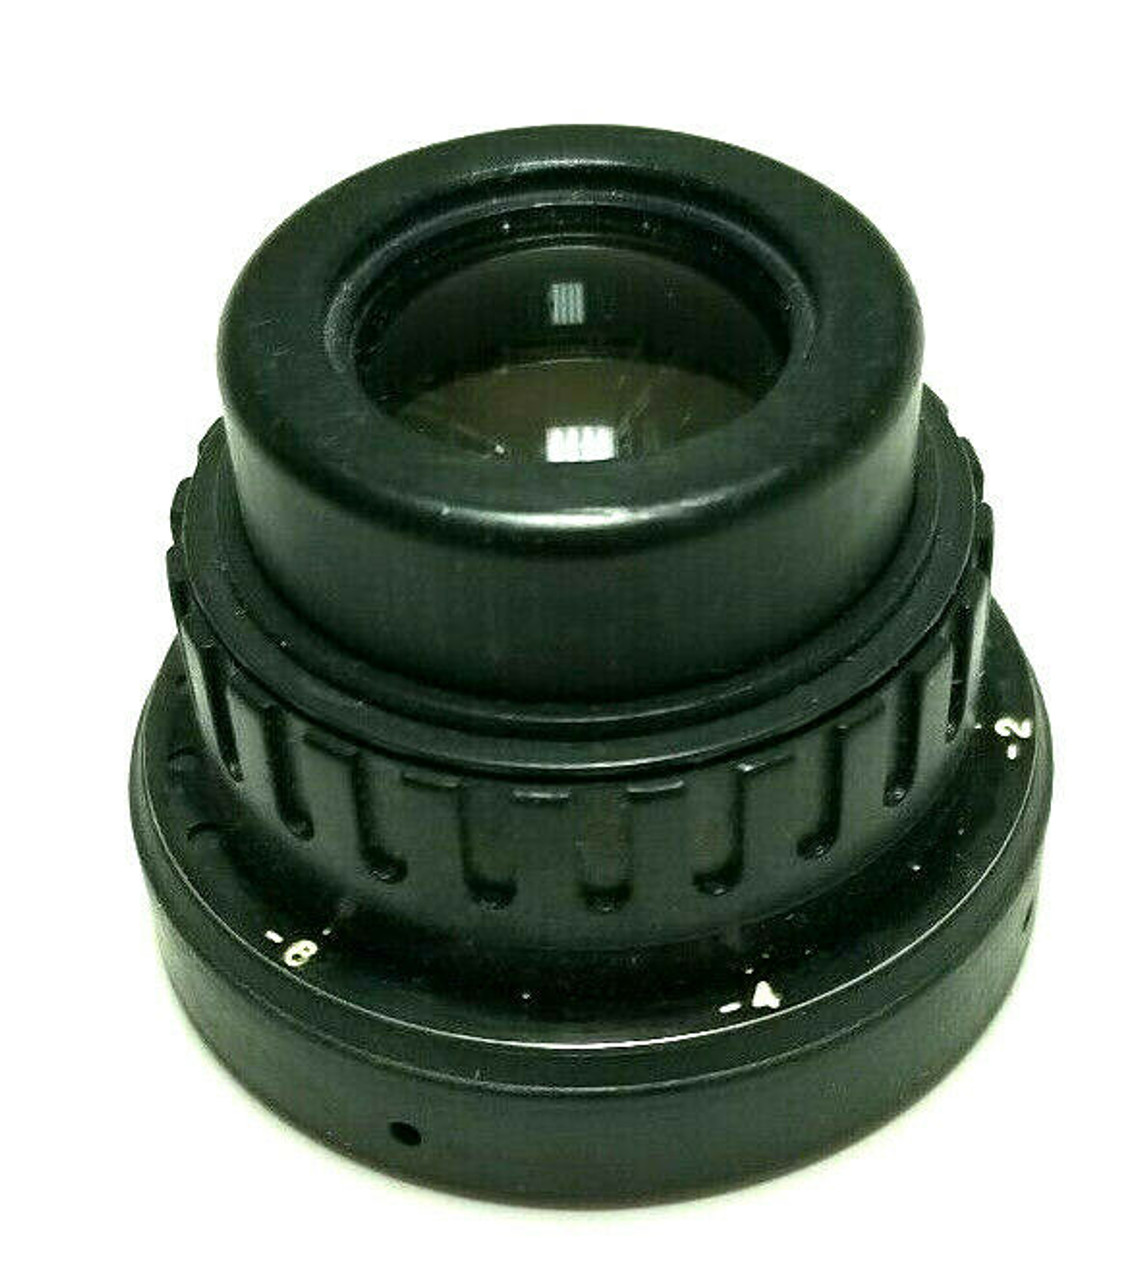 18mm Eyepiece Lens for Anvis 6/9 Night Vision Goggles NVG PVS-14 Monocular USED